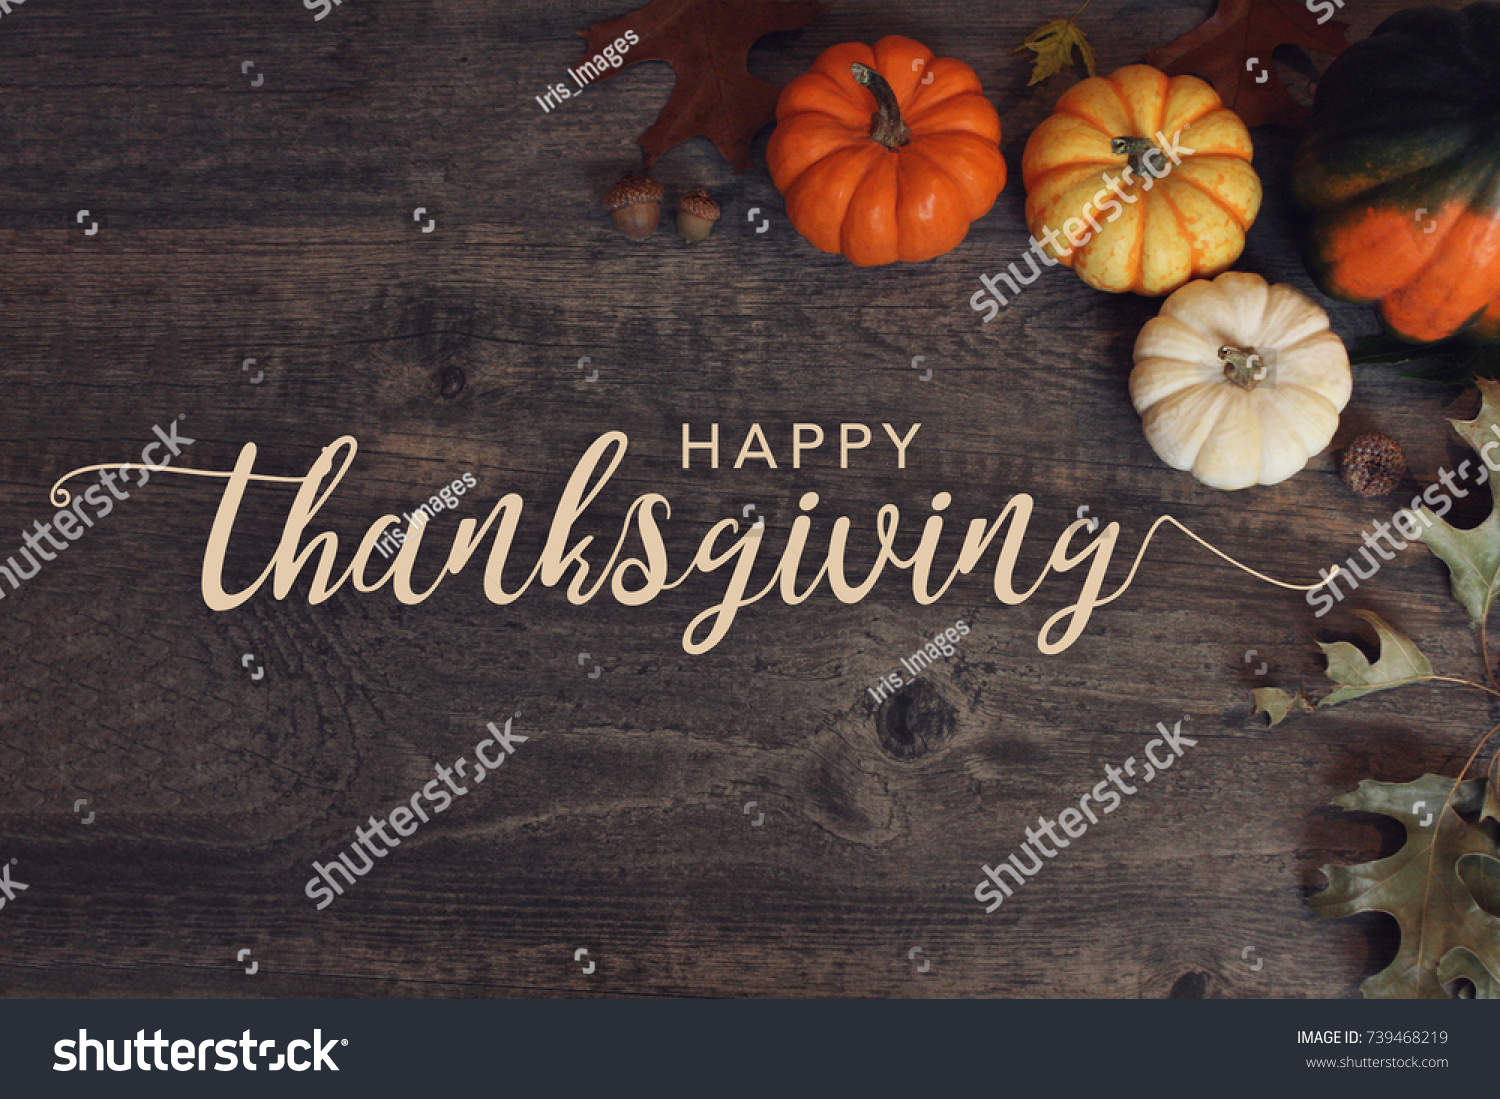 Happy Thanksgiving text with pumpkins and leaves over dark wood background #739468219 - 123PhotoFree.com